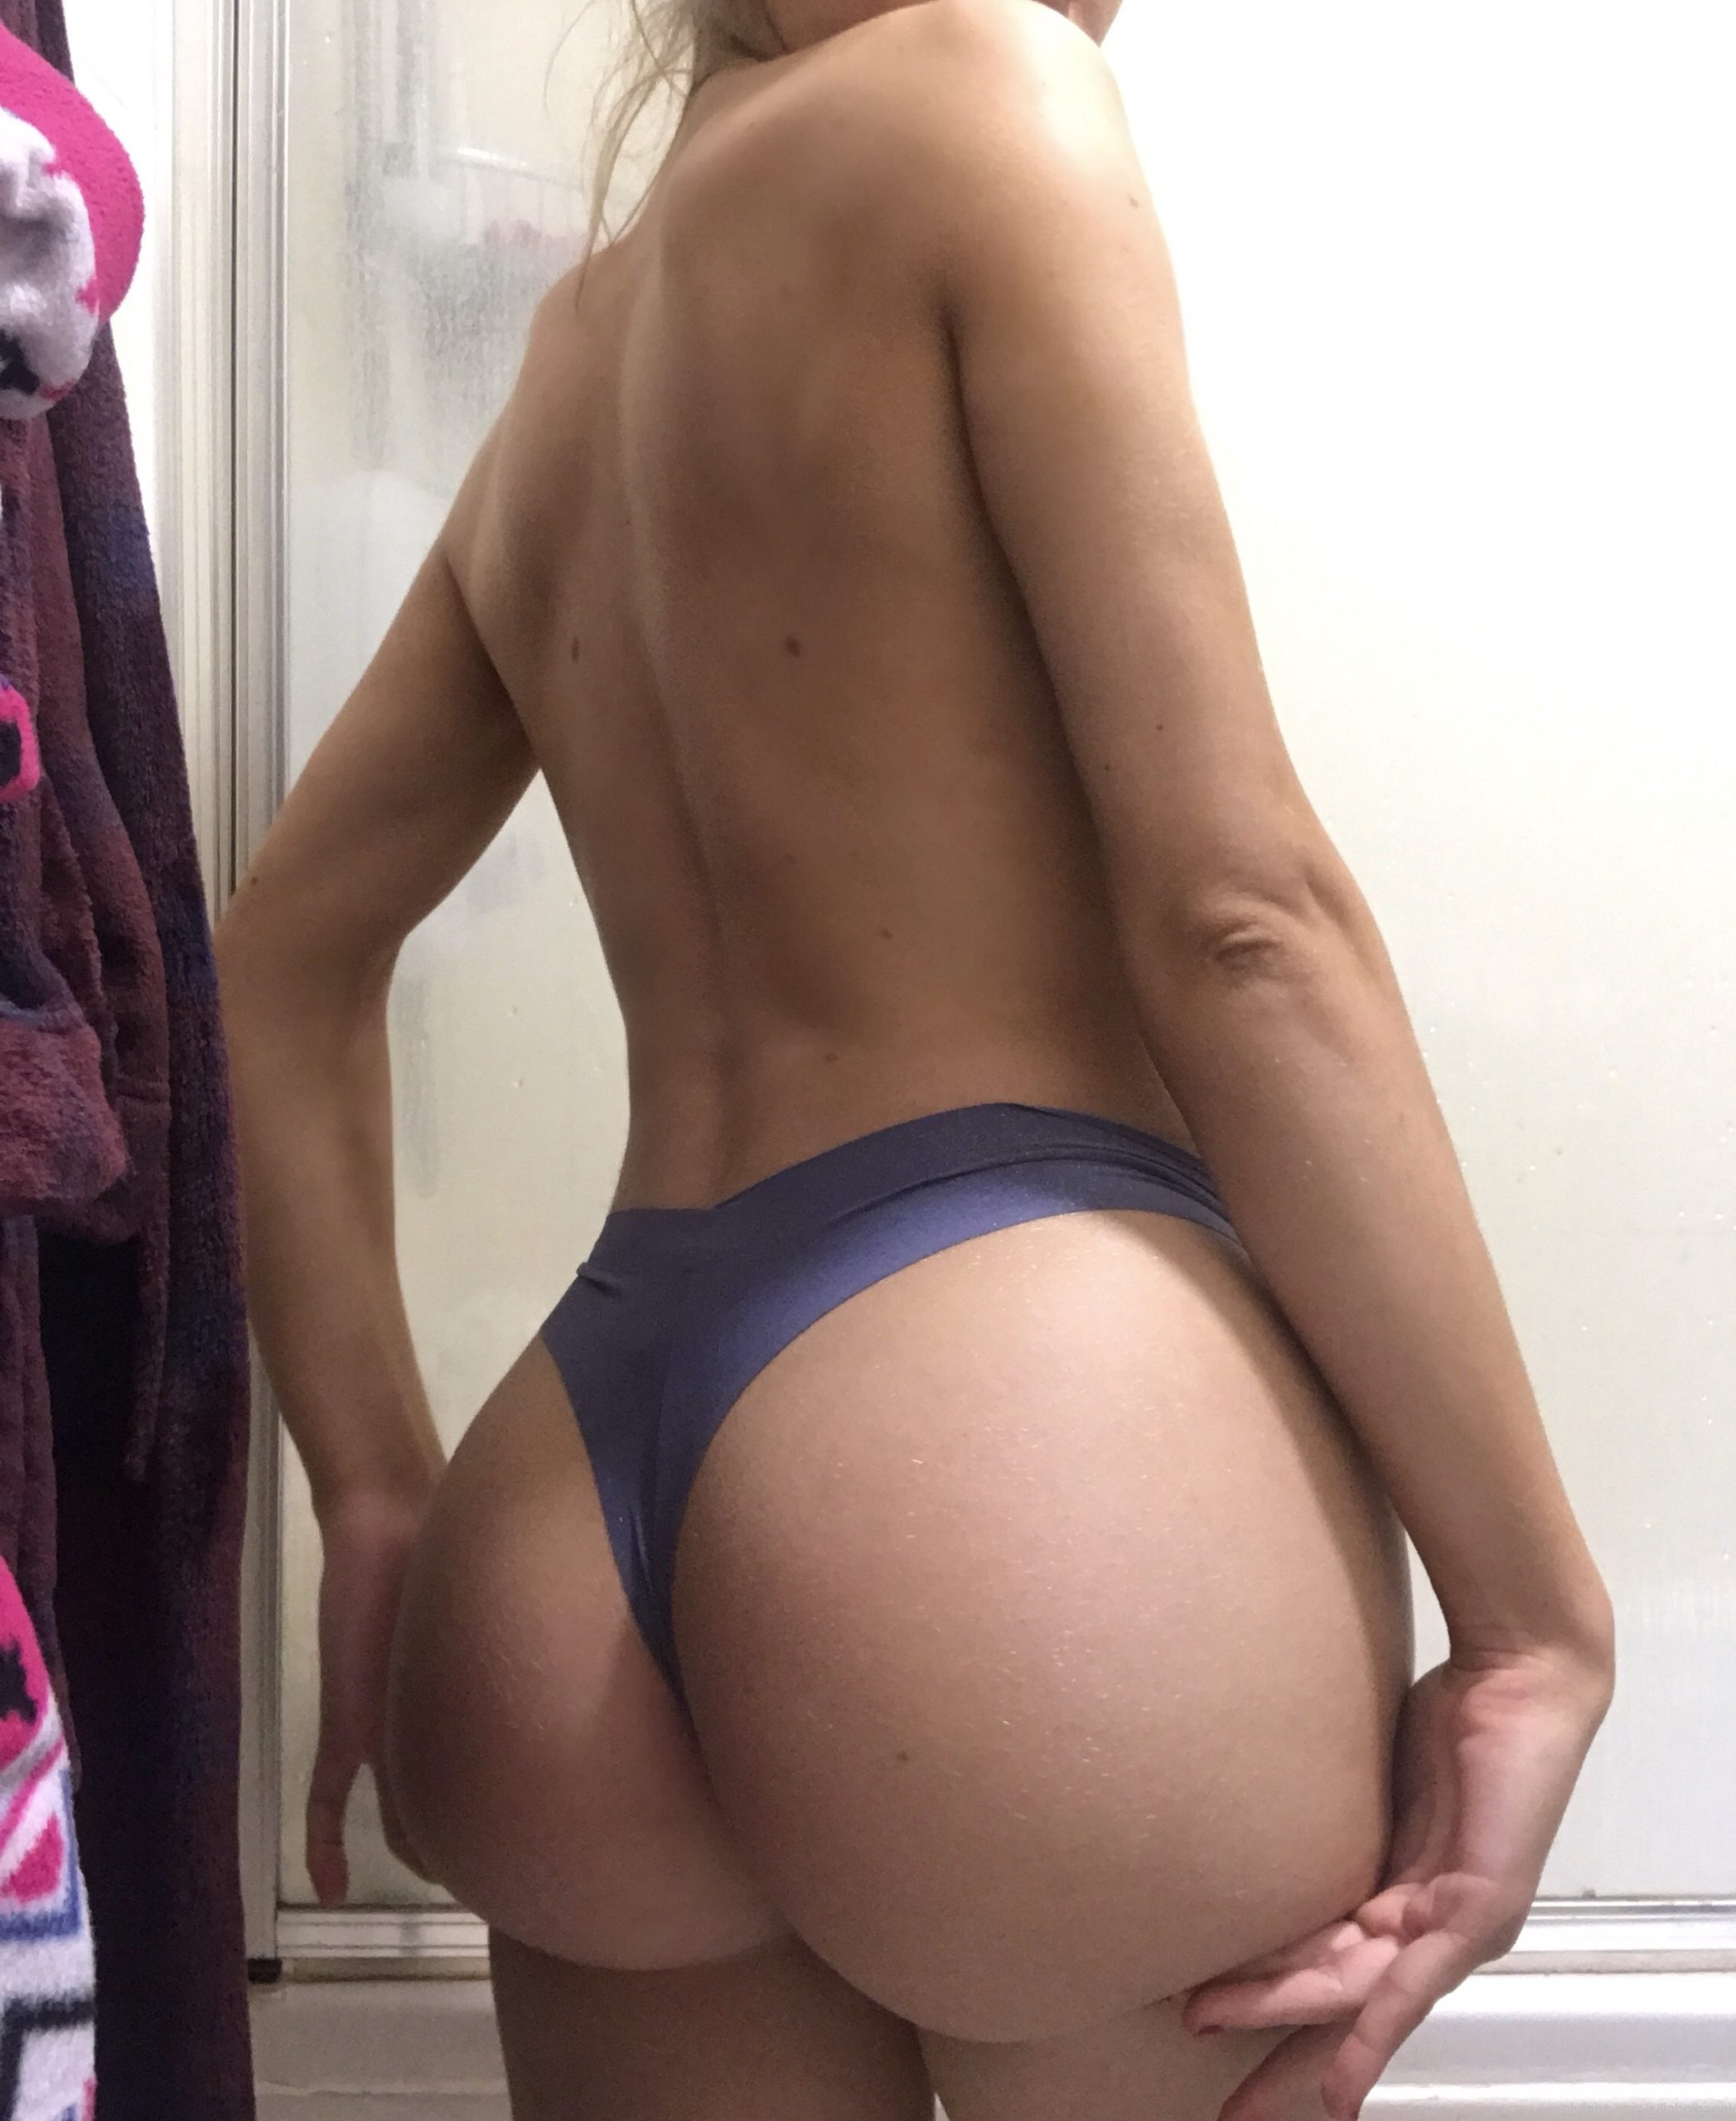 Julia Holbanel Onlyfans Pictures